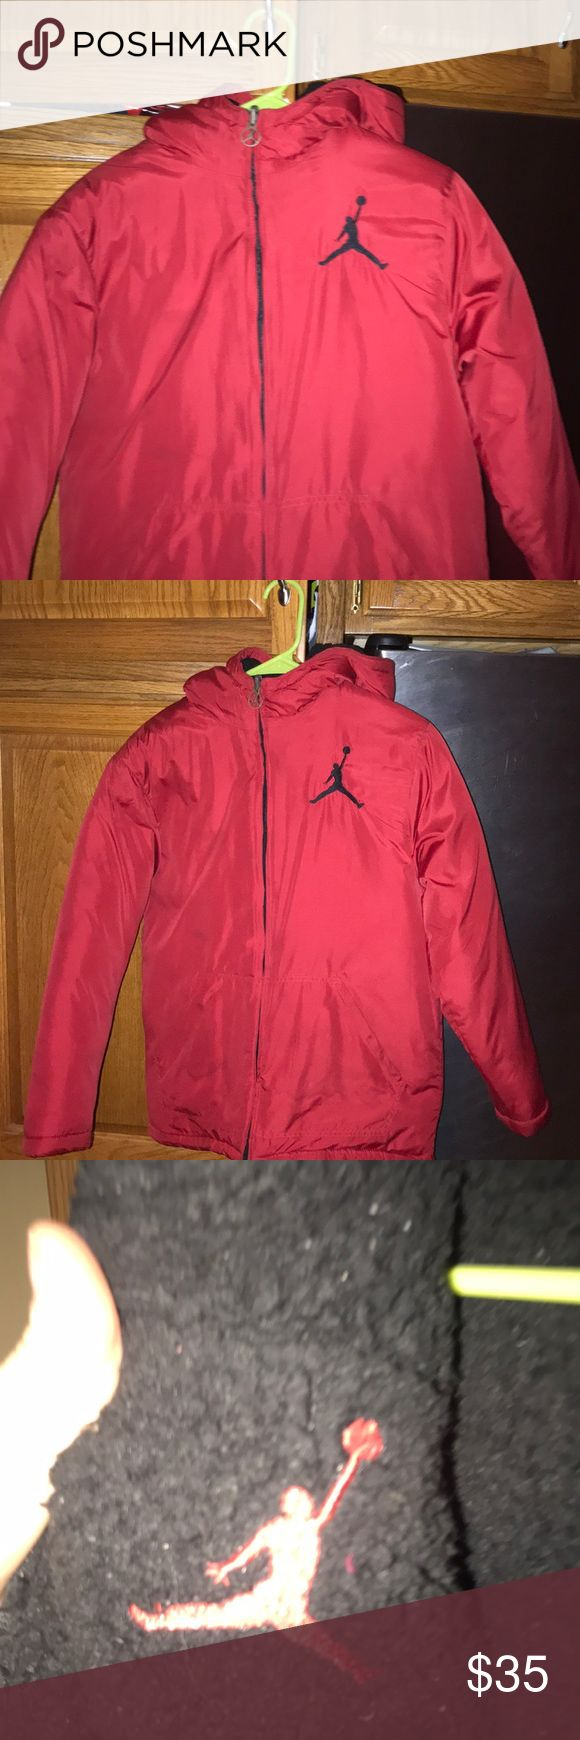 Boys Jordan jacket Boys size 14/16 reversible winter jacket .. some lint balls inside can easily be removed great condition Jordan Jackets & Coats Puffers